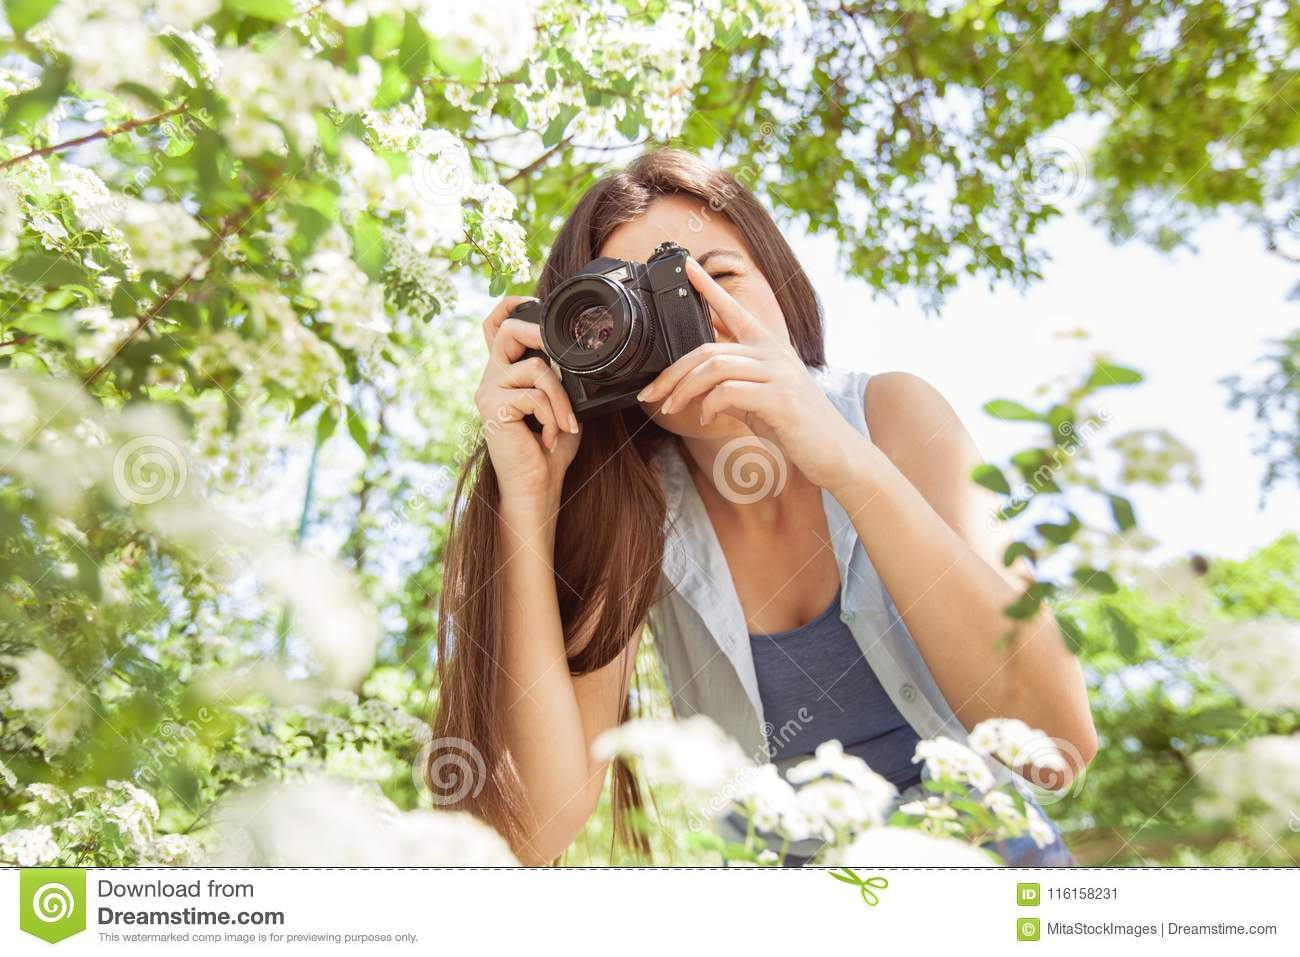 Women being photograghed by a amature